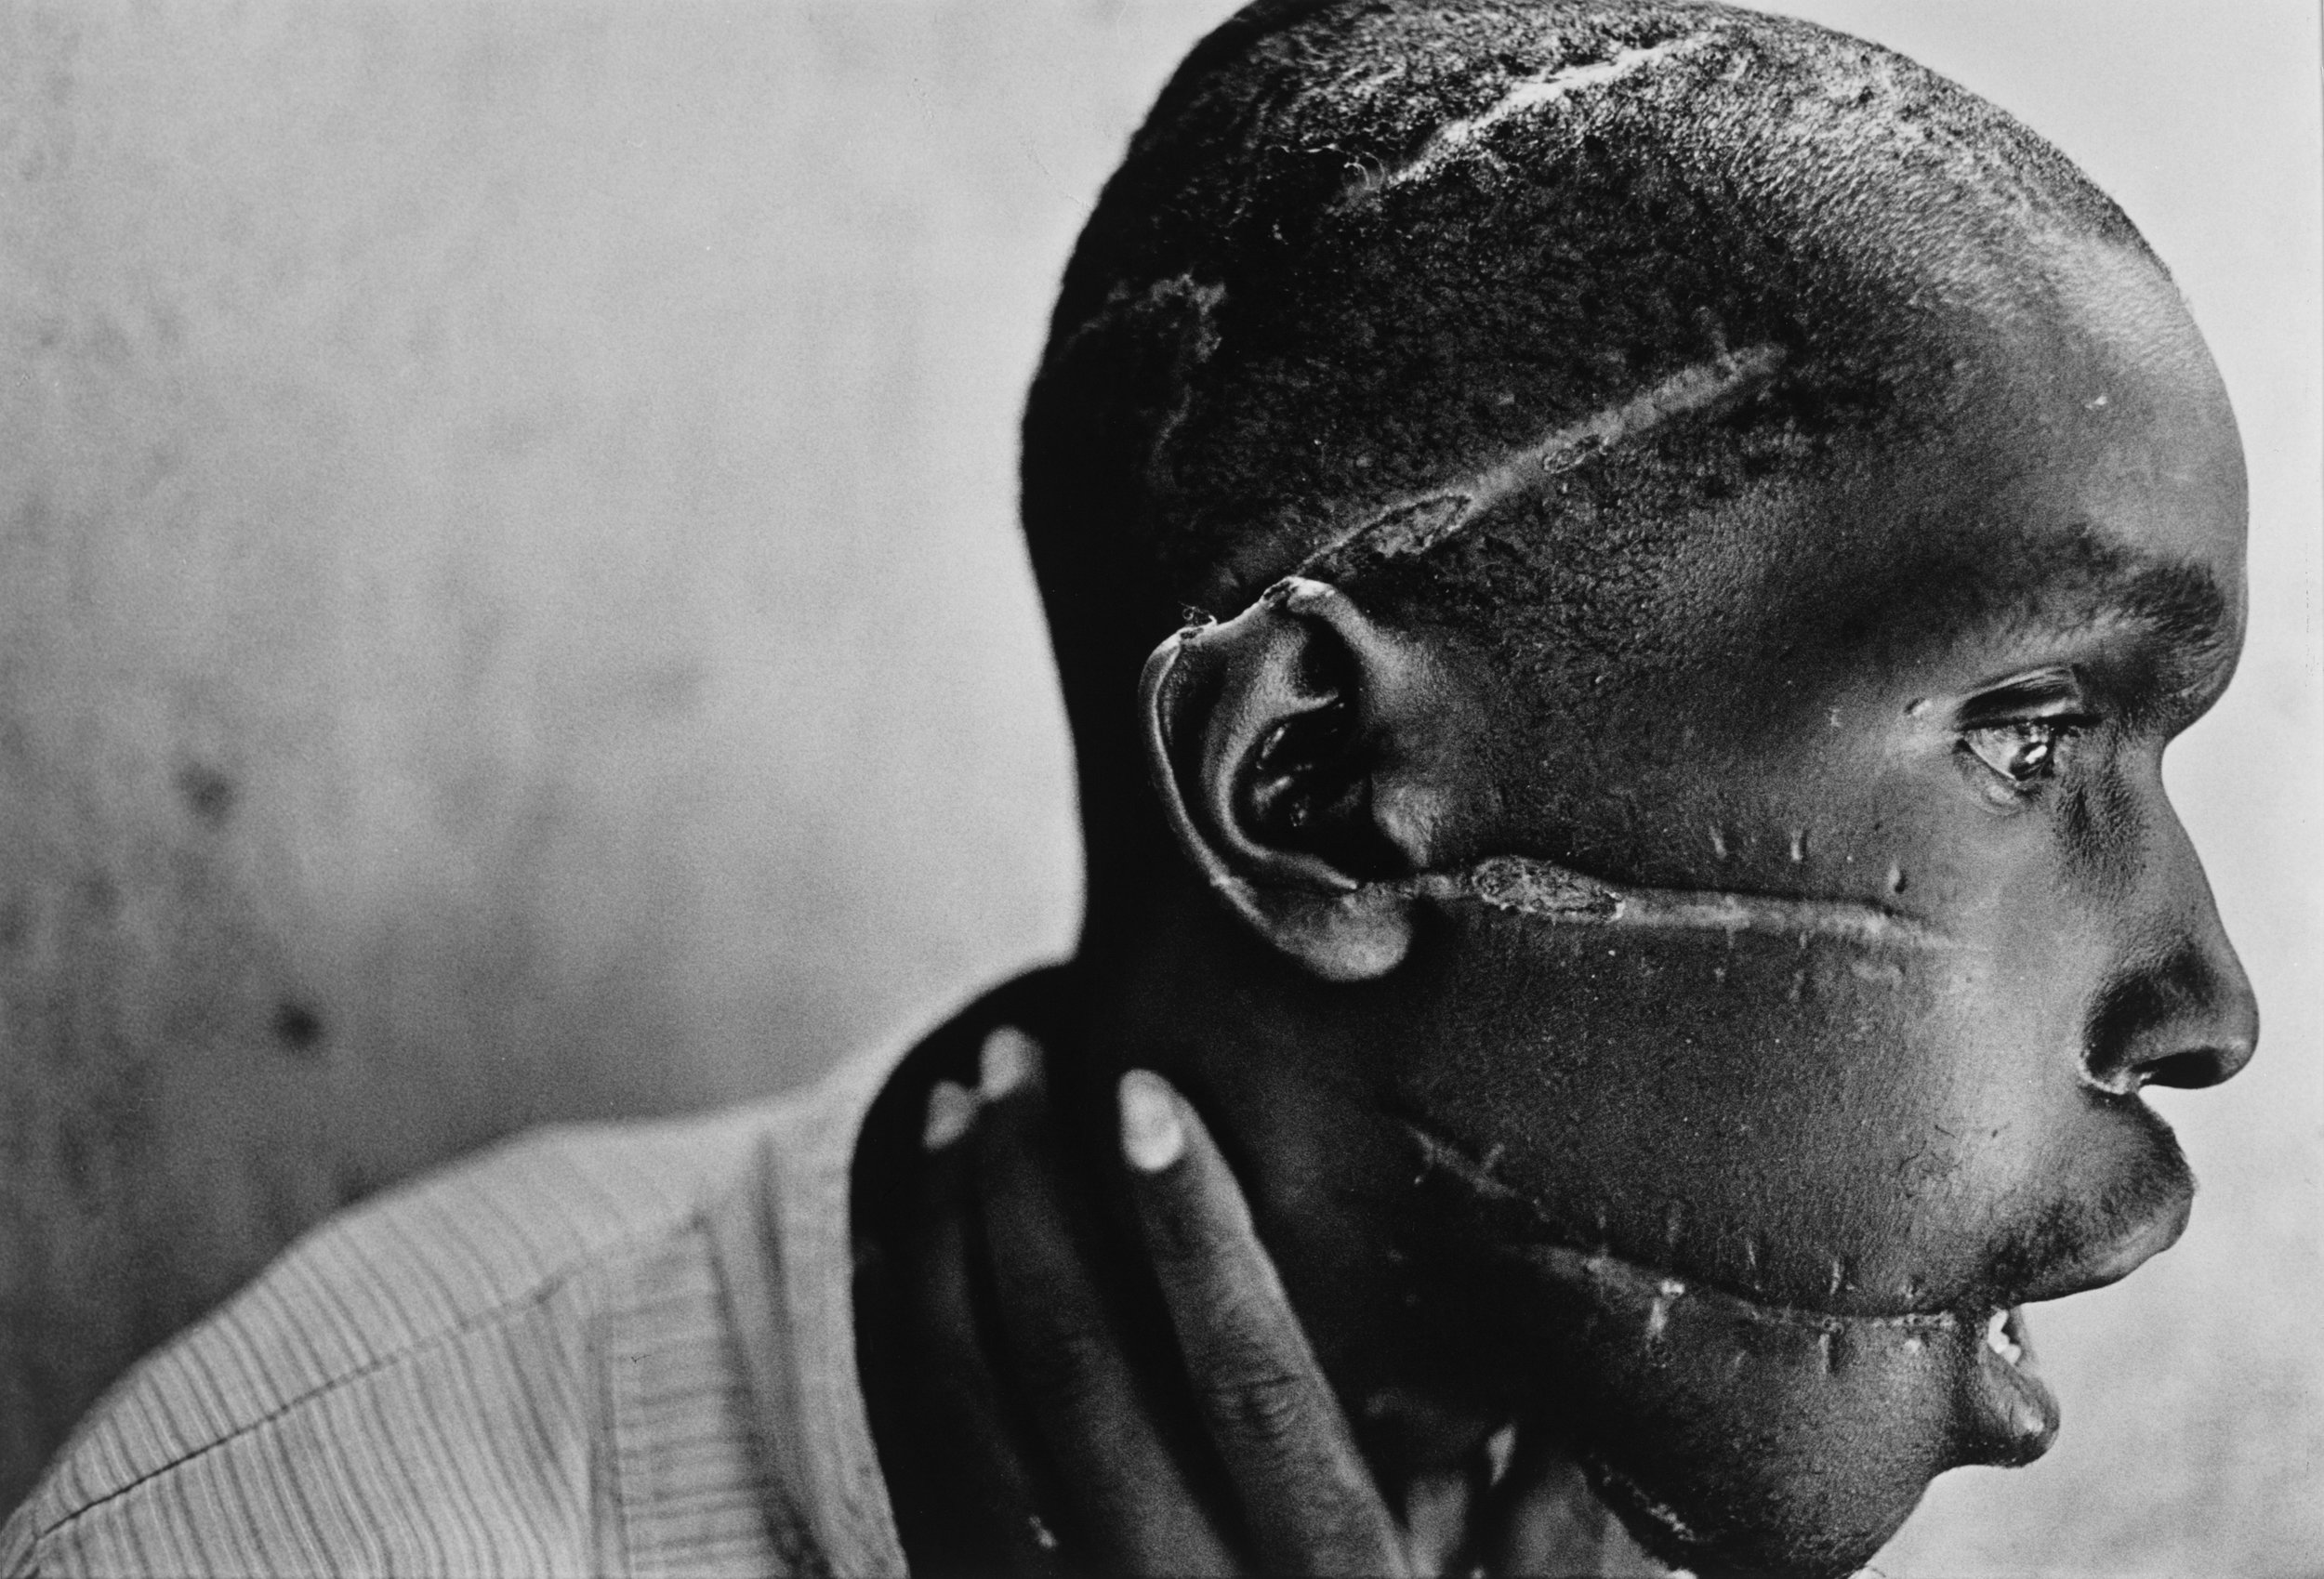 WorldPressPhoto1995_James Nachtwey.jpg